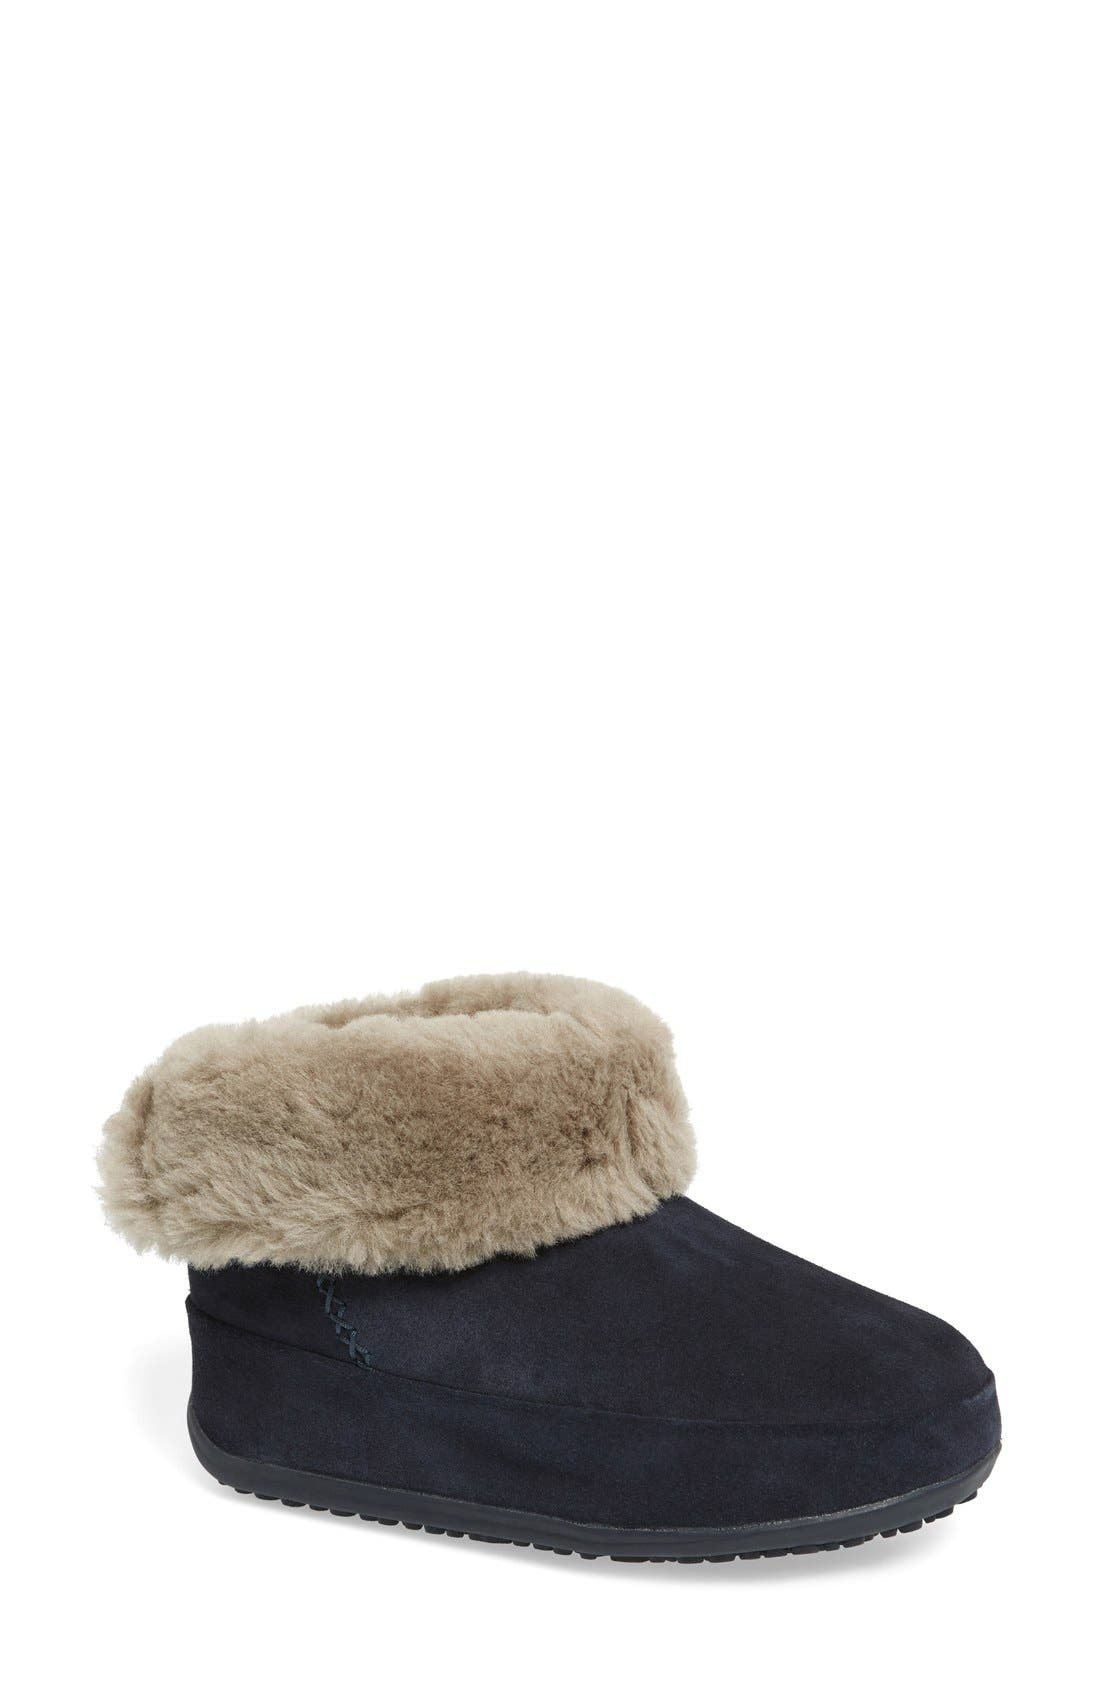 Main Image - FitFlop™ 'Shorty' Shearling Lined Boot (Women)